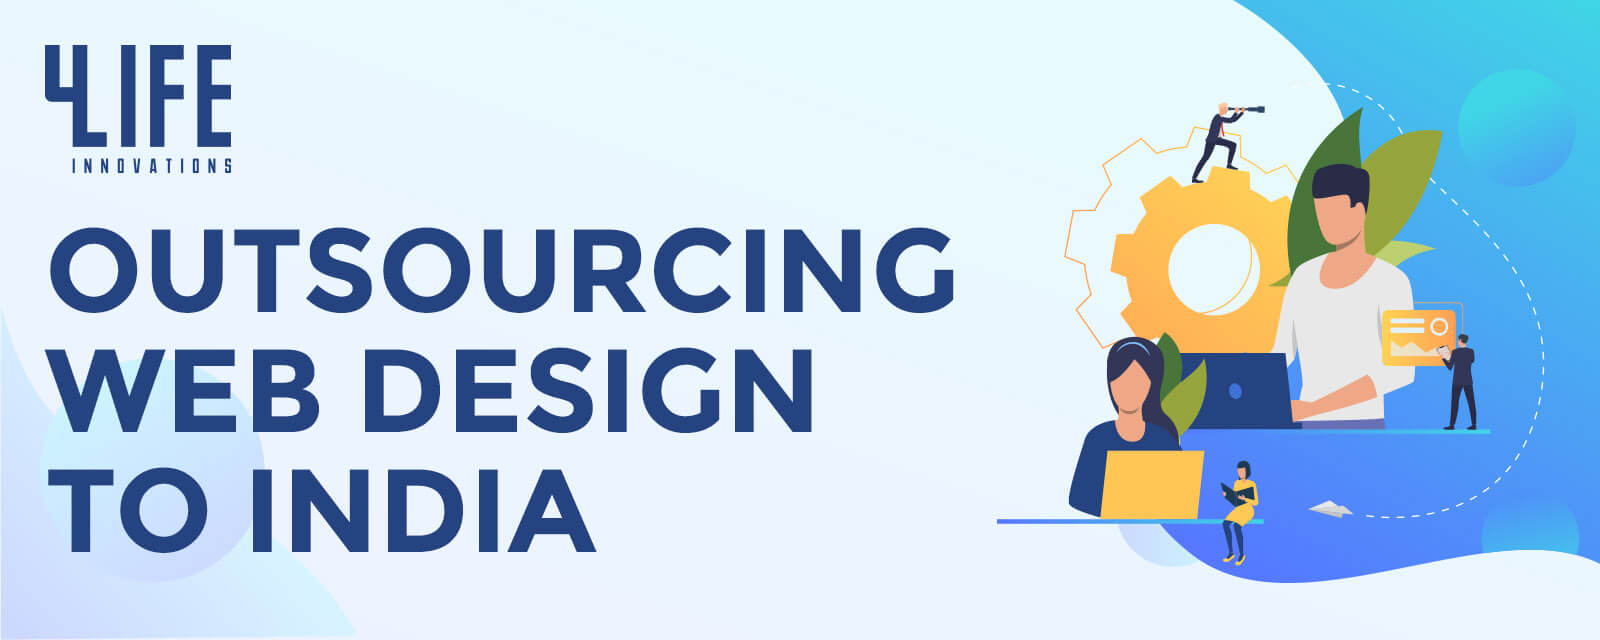 Web Design Outsourcing to India - Outsource Web Development India